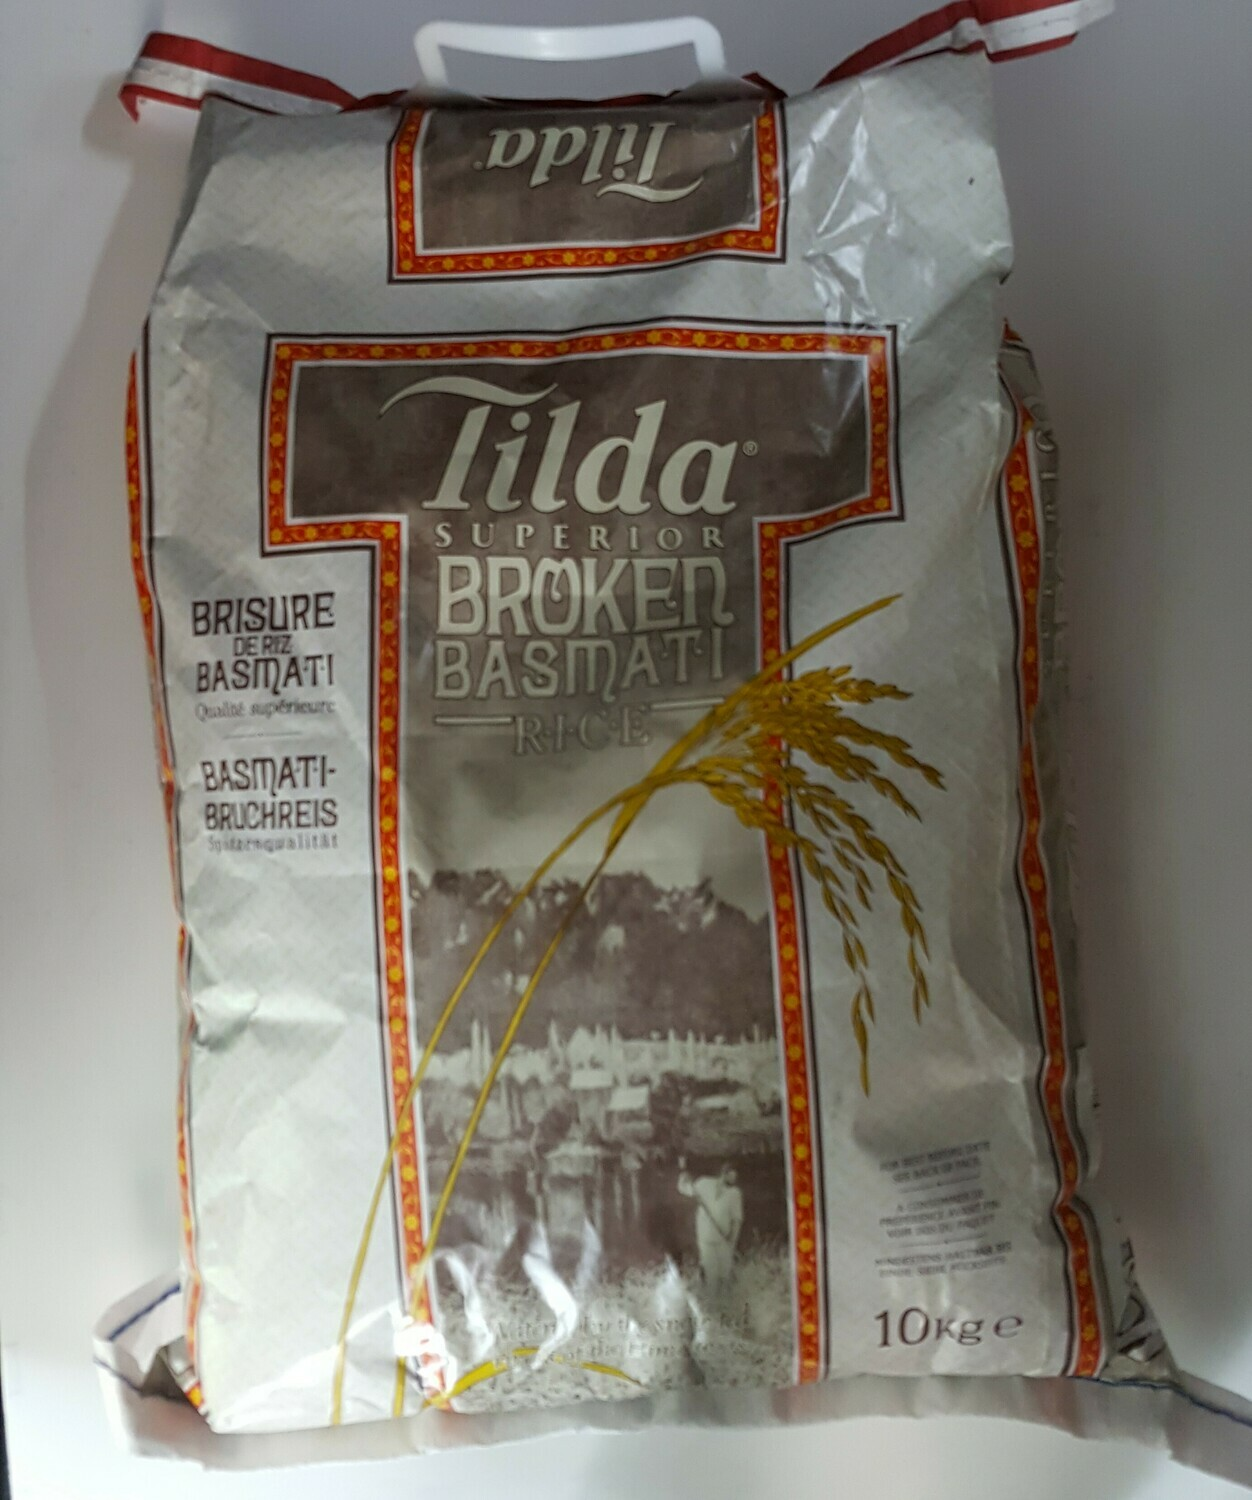 Broken Basmati Rice TILDA SUPERIOR 10Kg